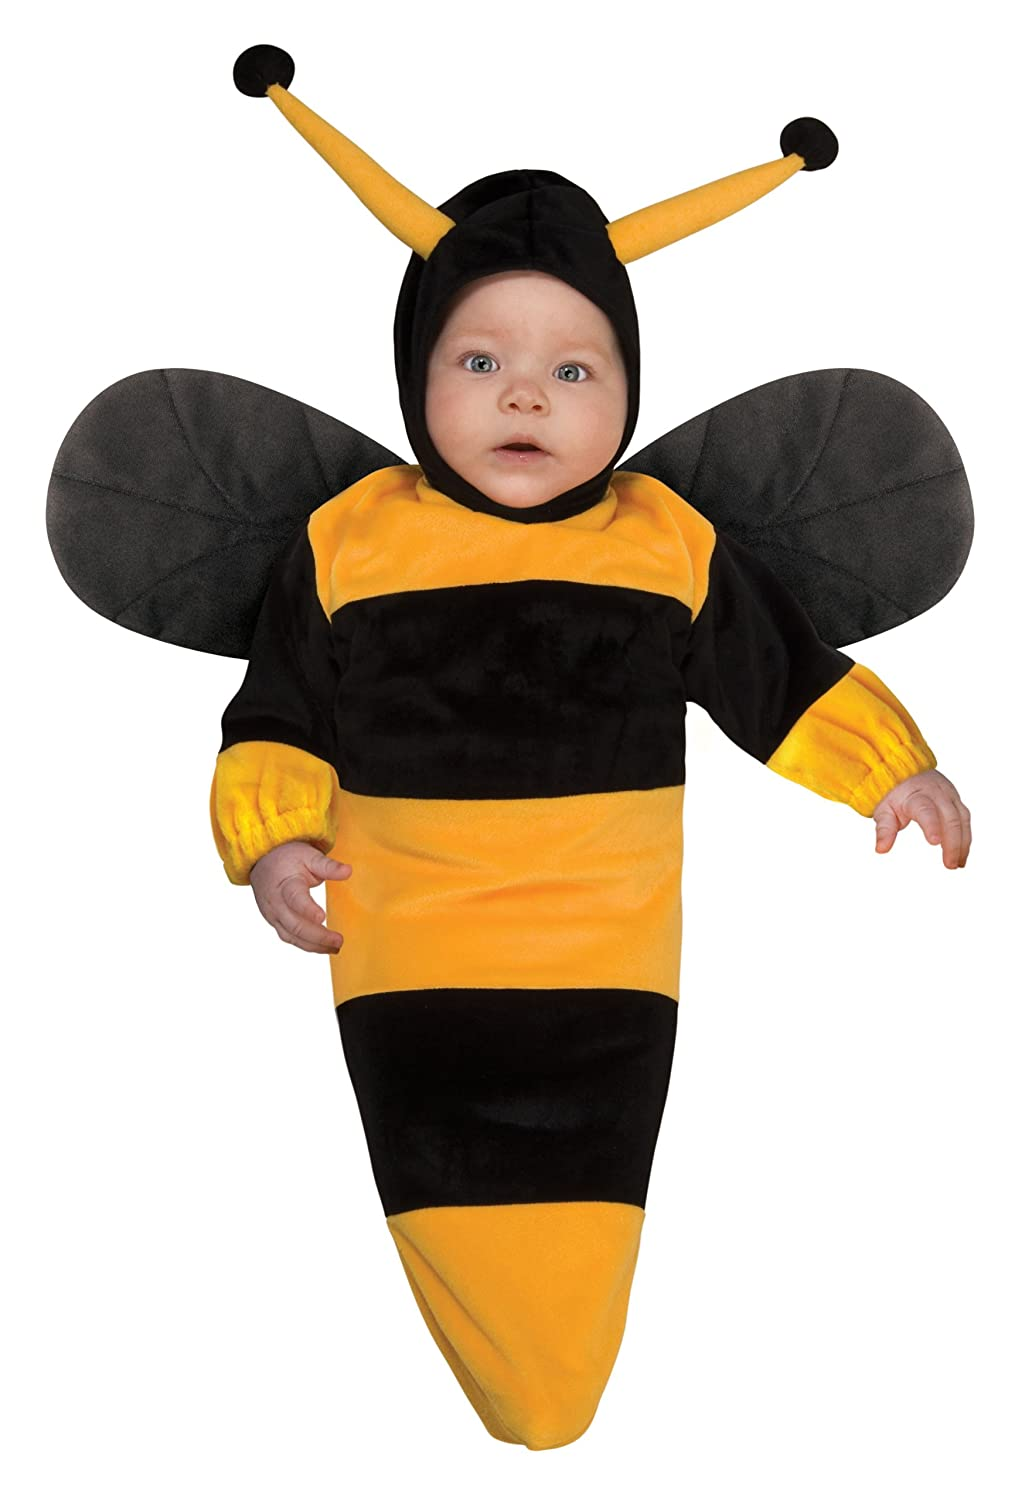 amazoncom rubies costume deluxe baby bunting bumble bee costume 1 to 9 months clothing - Bee Halloween